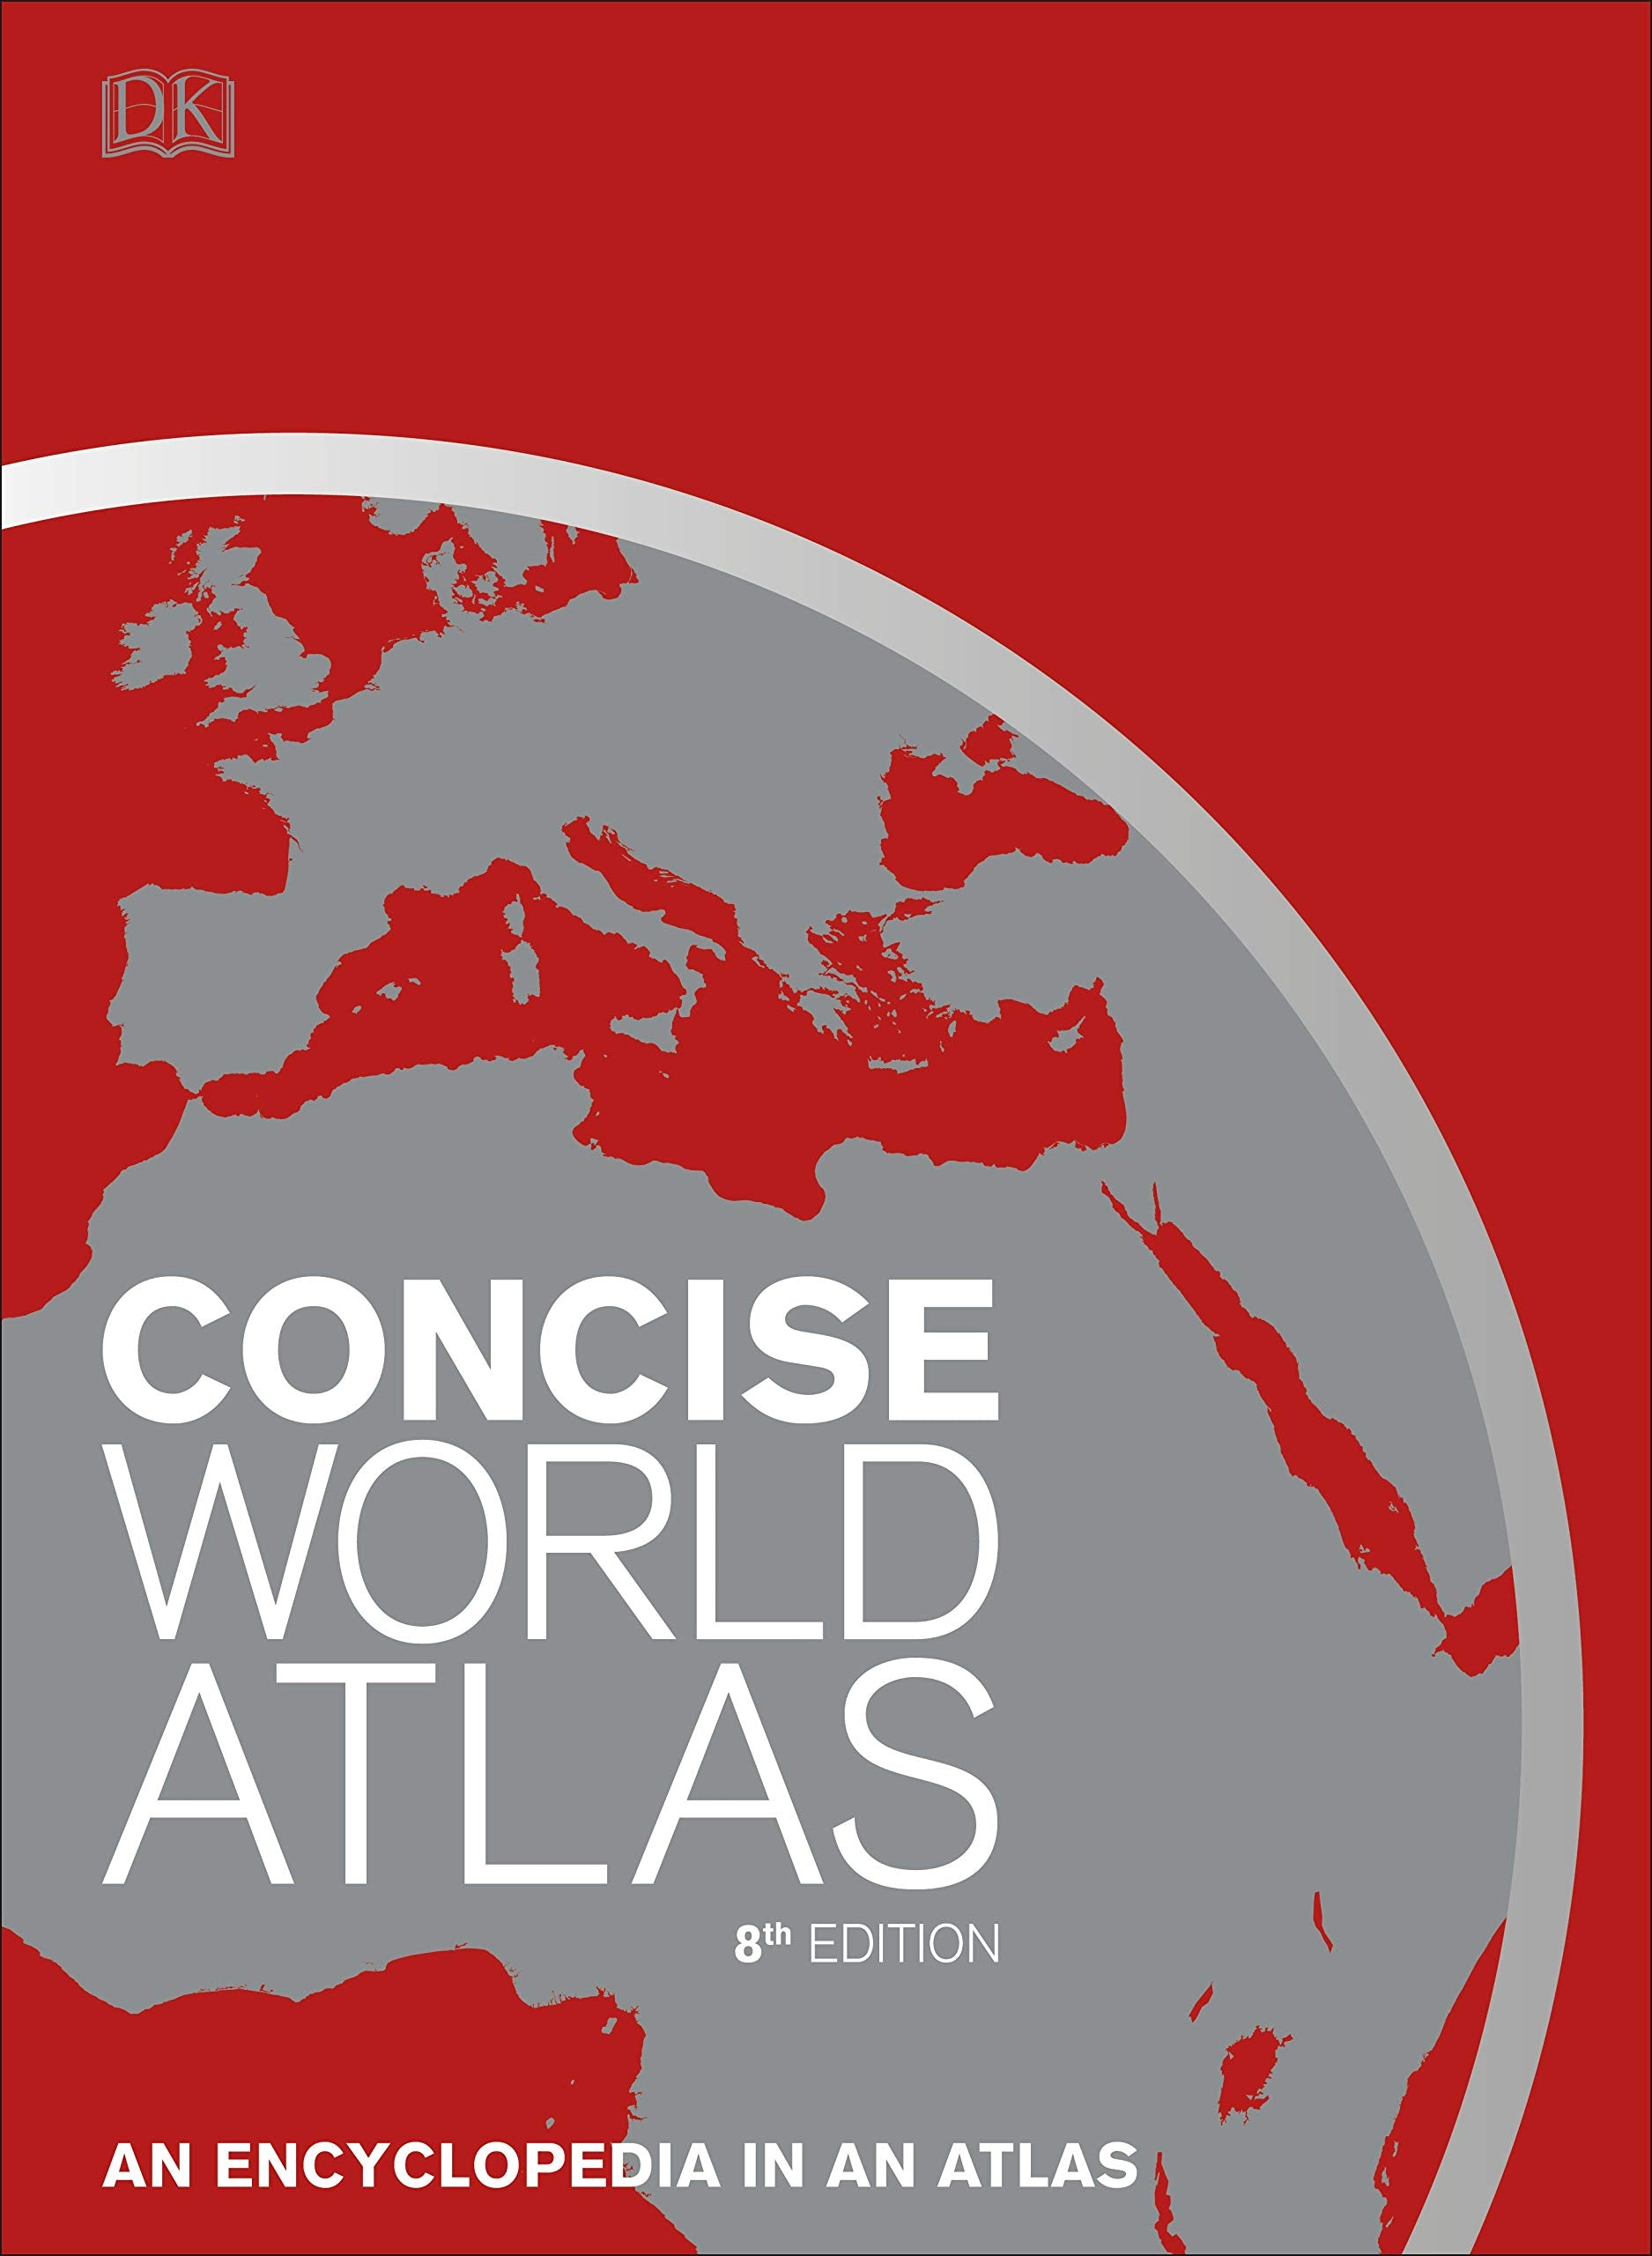 DK Concise Atlas of the World 8e